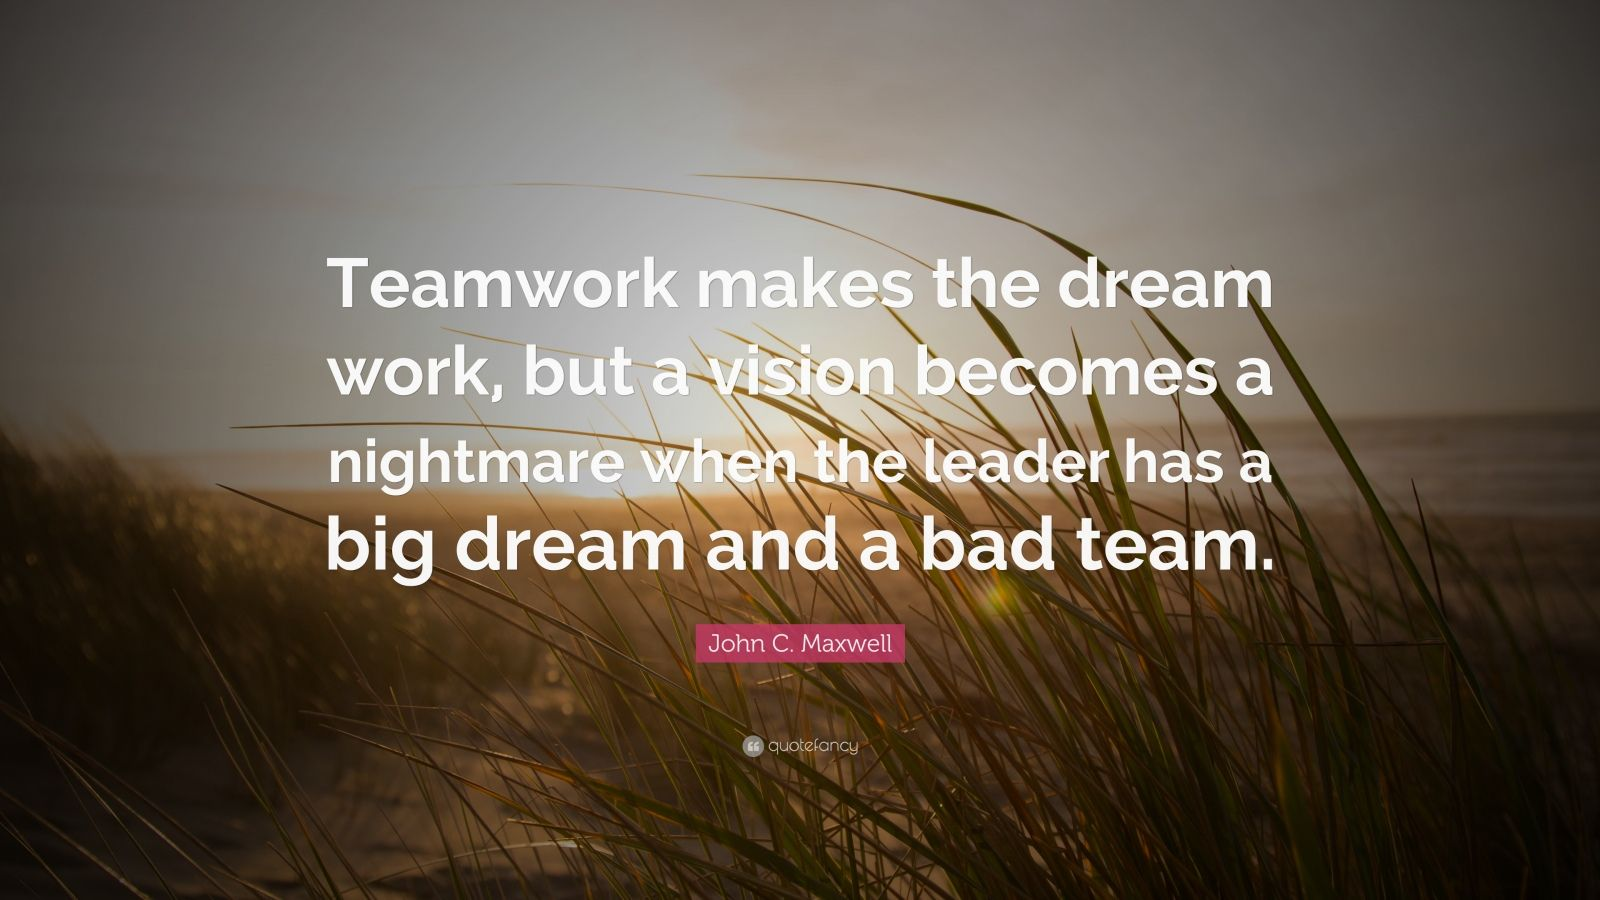 "John C. Maxwell Quote: ""Teamwork makes the dream work, but a vision becomes a nightmare when the leader has a big dream and a bad team."""